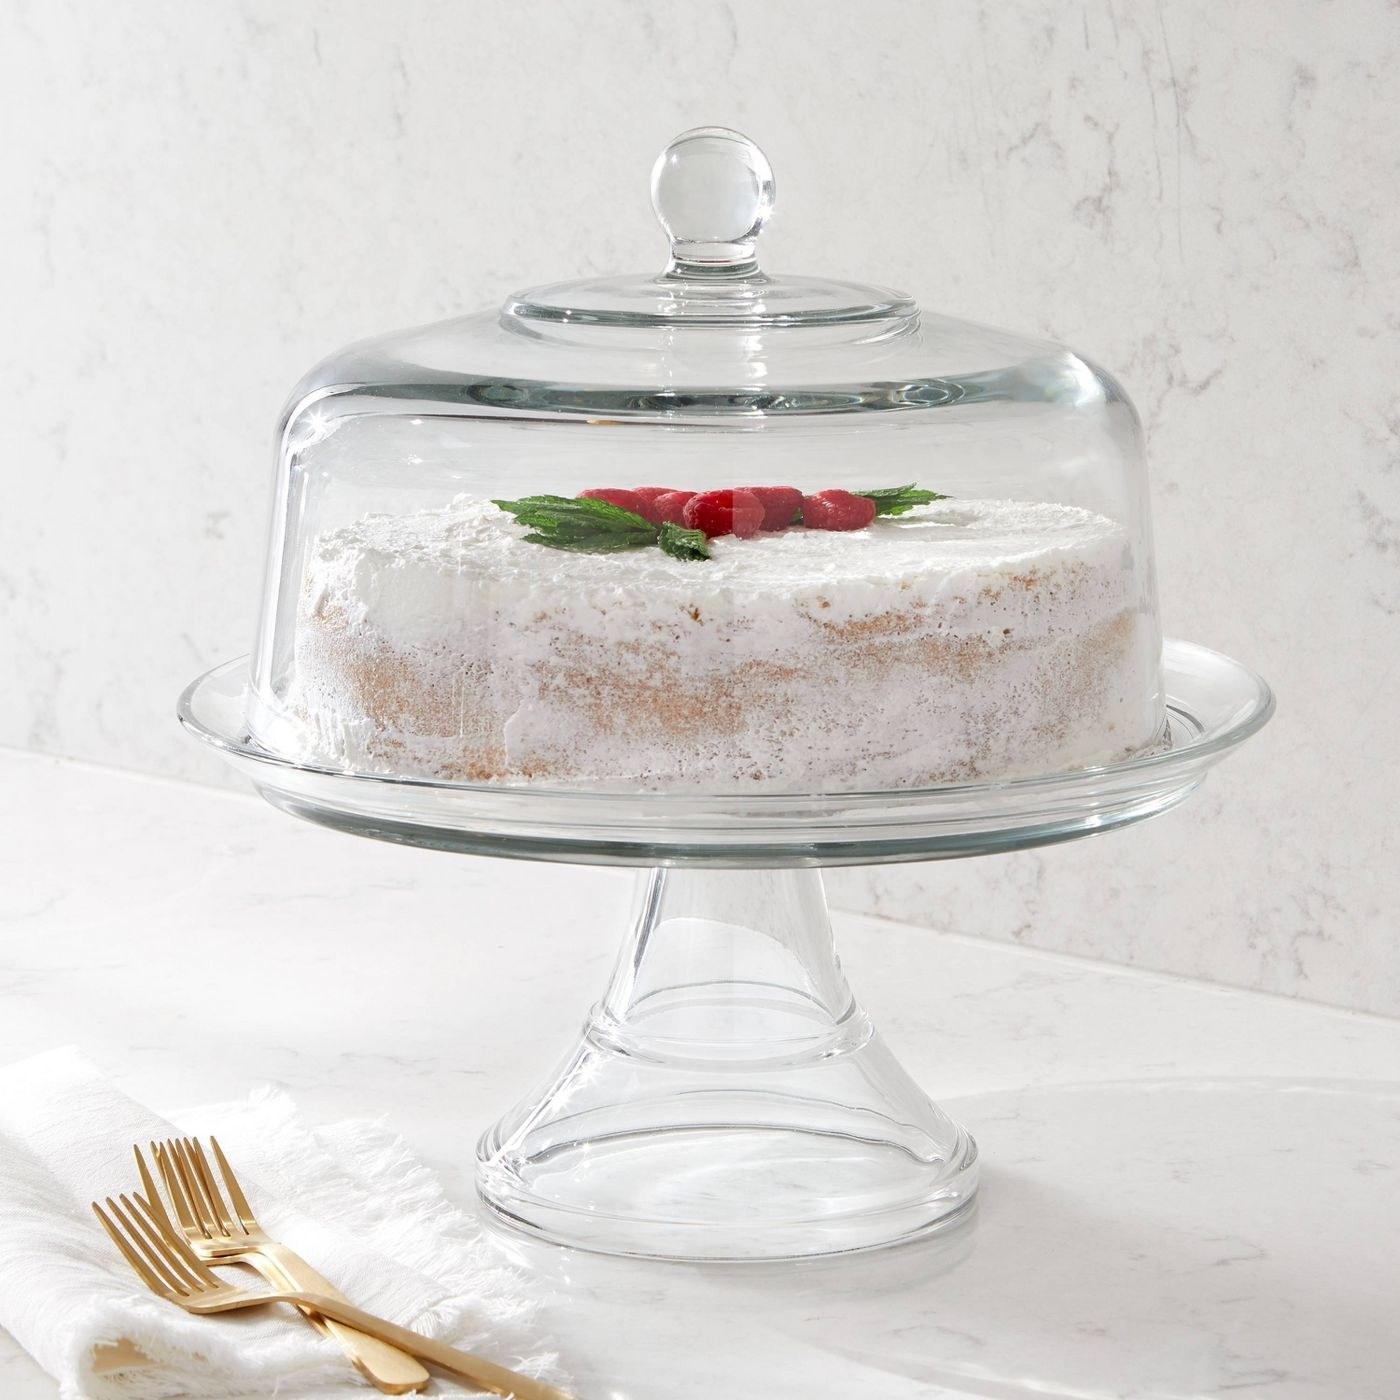 the glass cake stand with a cake inside